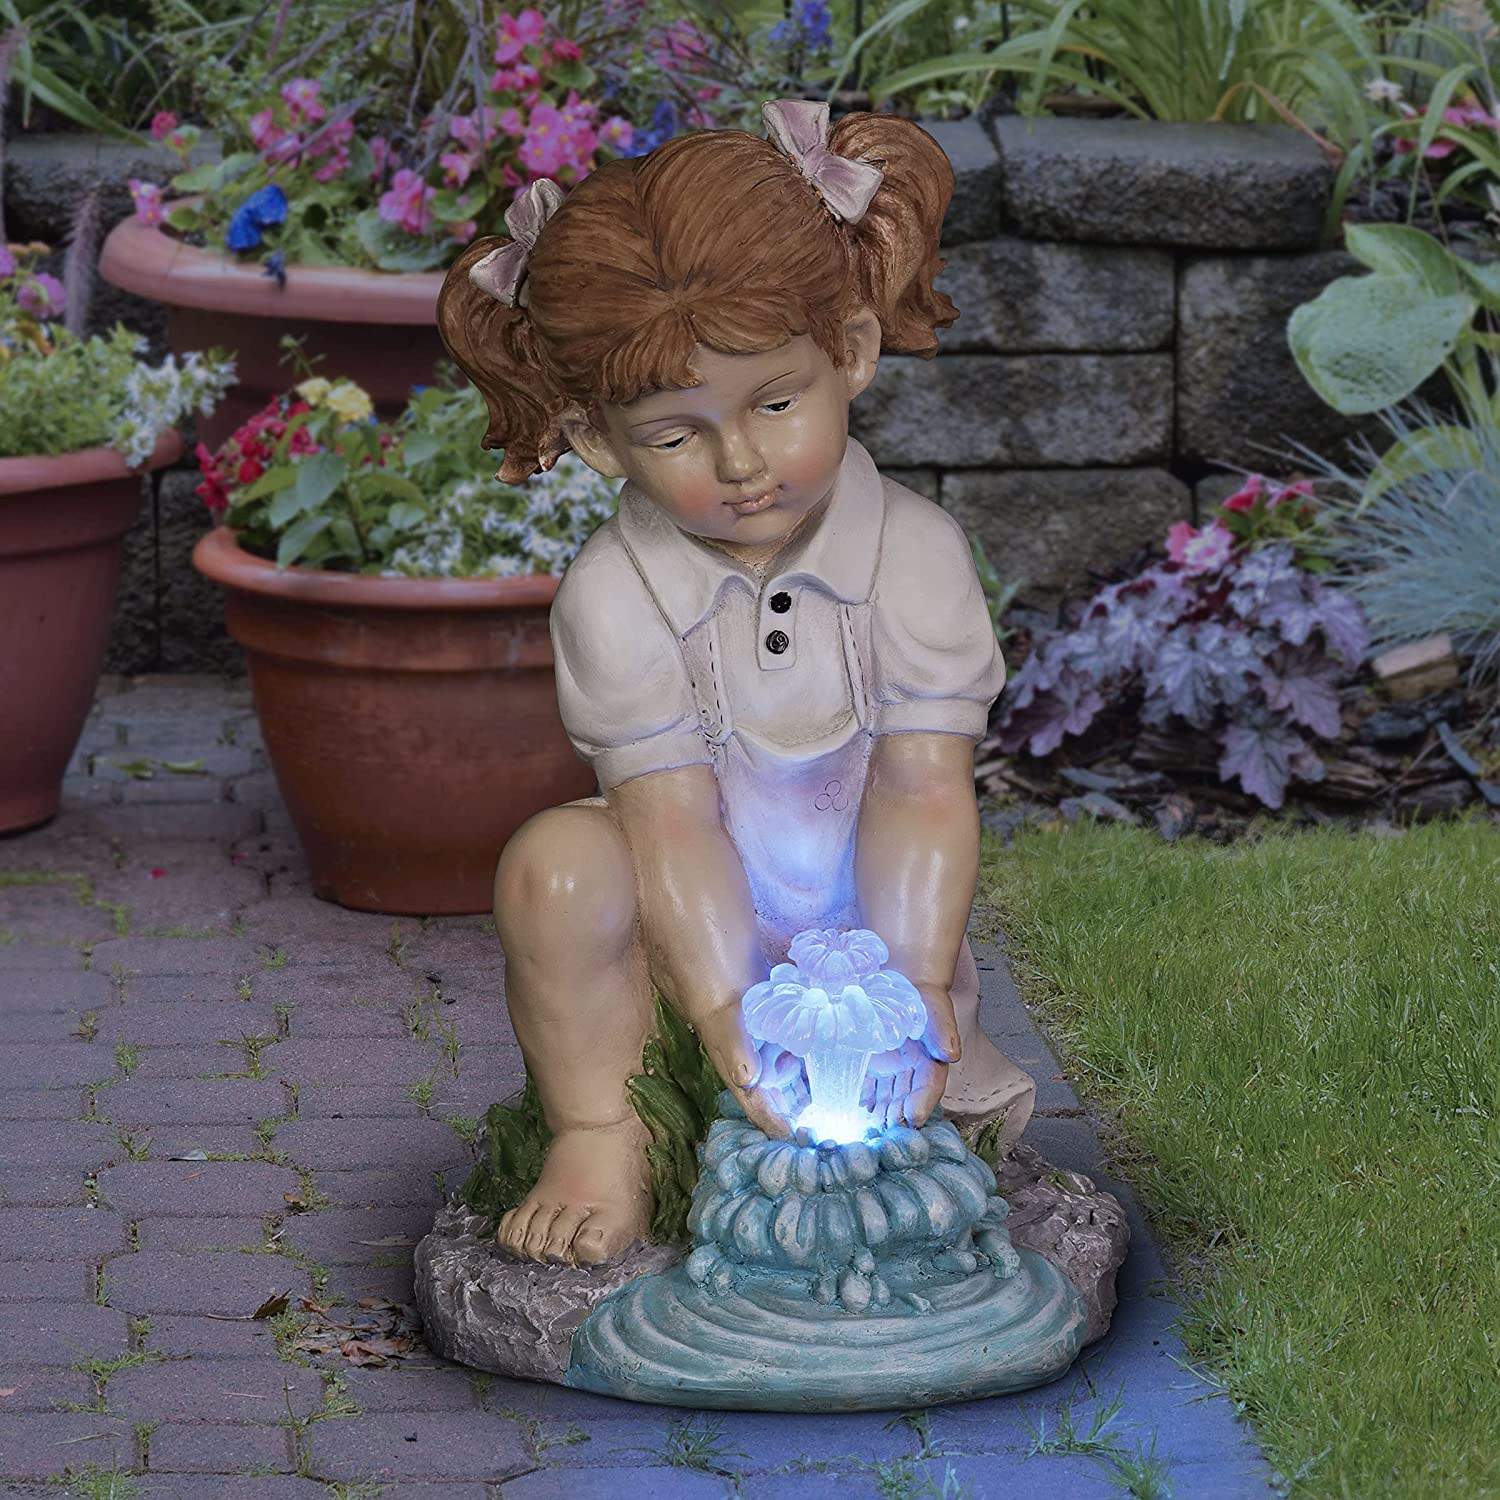 Exhart Solar Girl Playing with Chicago Mall LED Garden Form Statuary Opening large release sale 1 Water